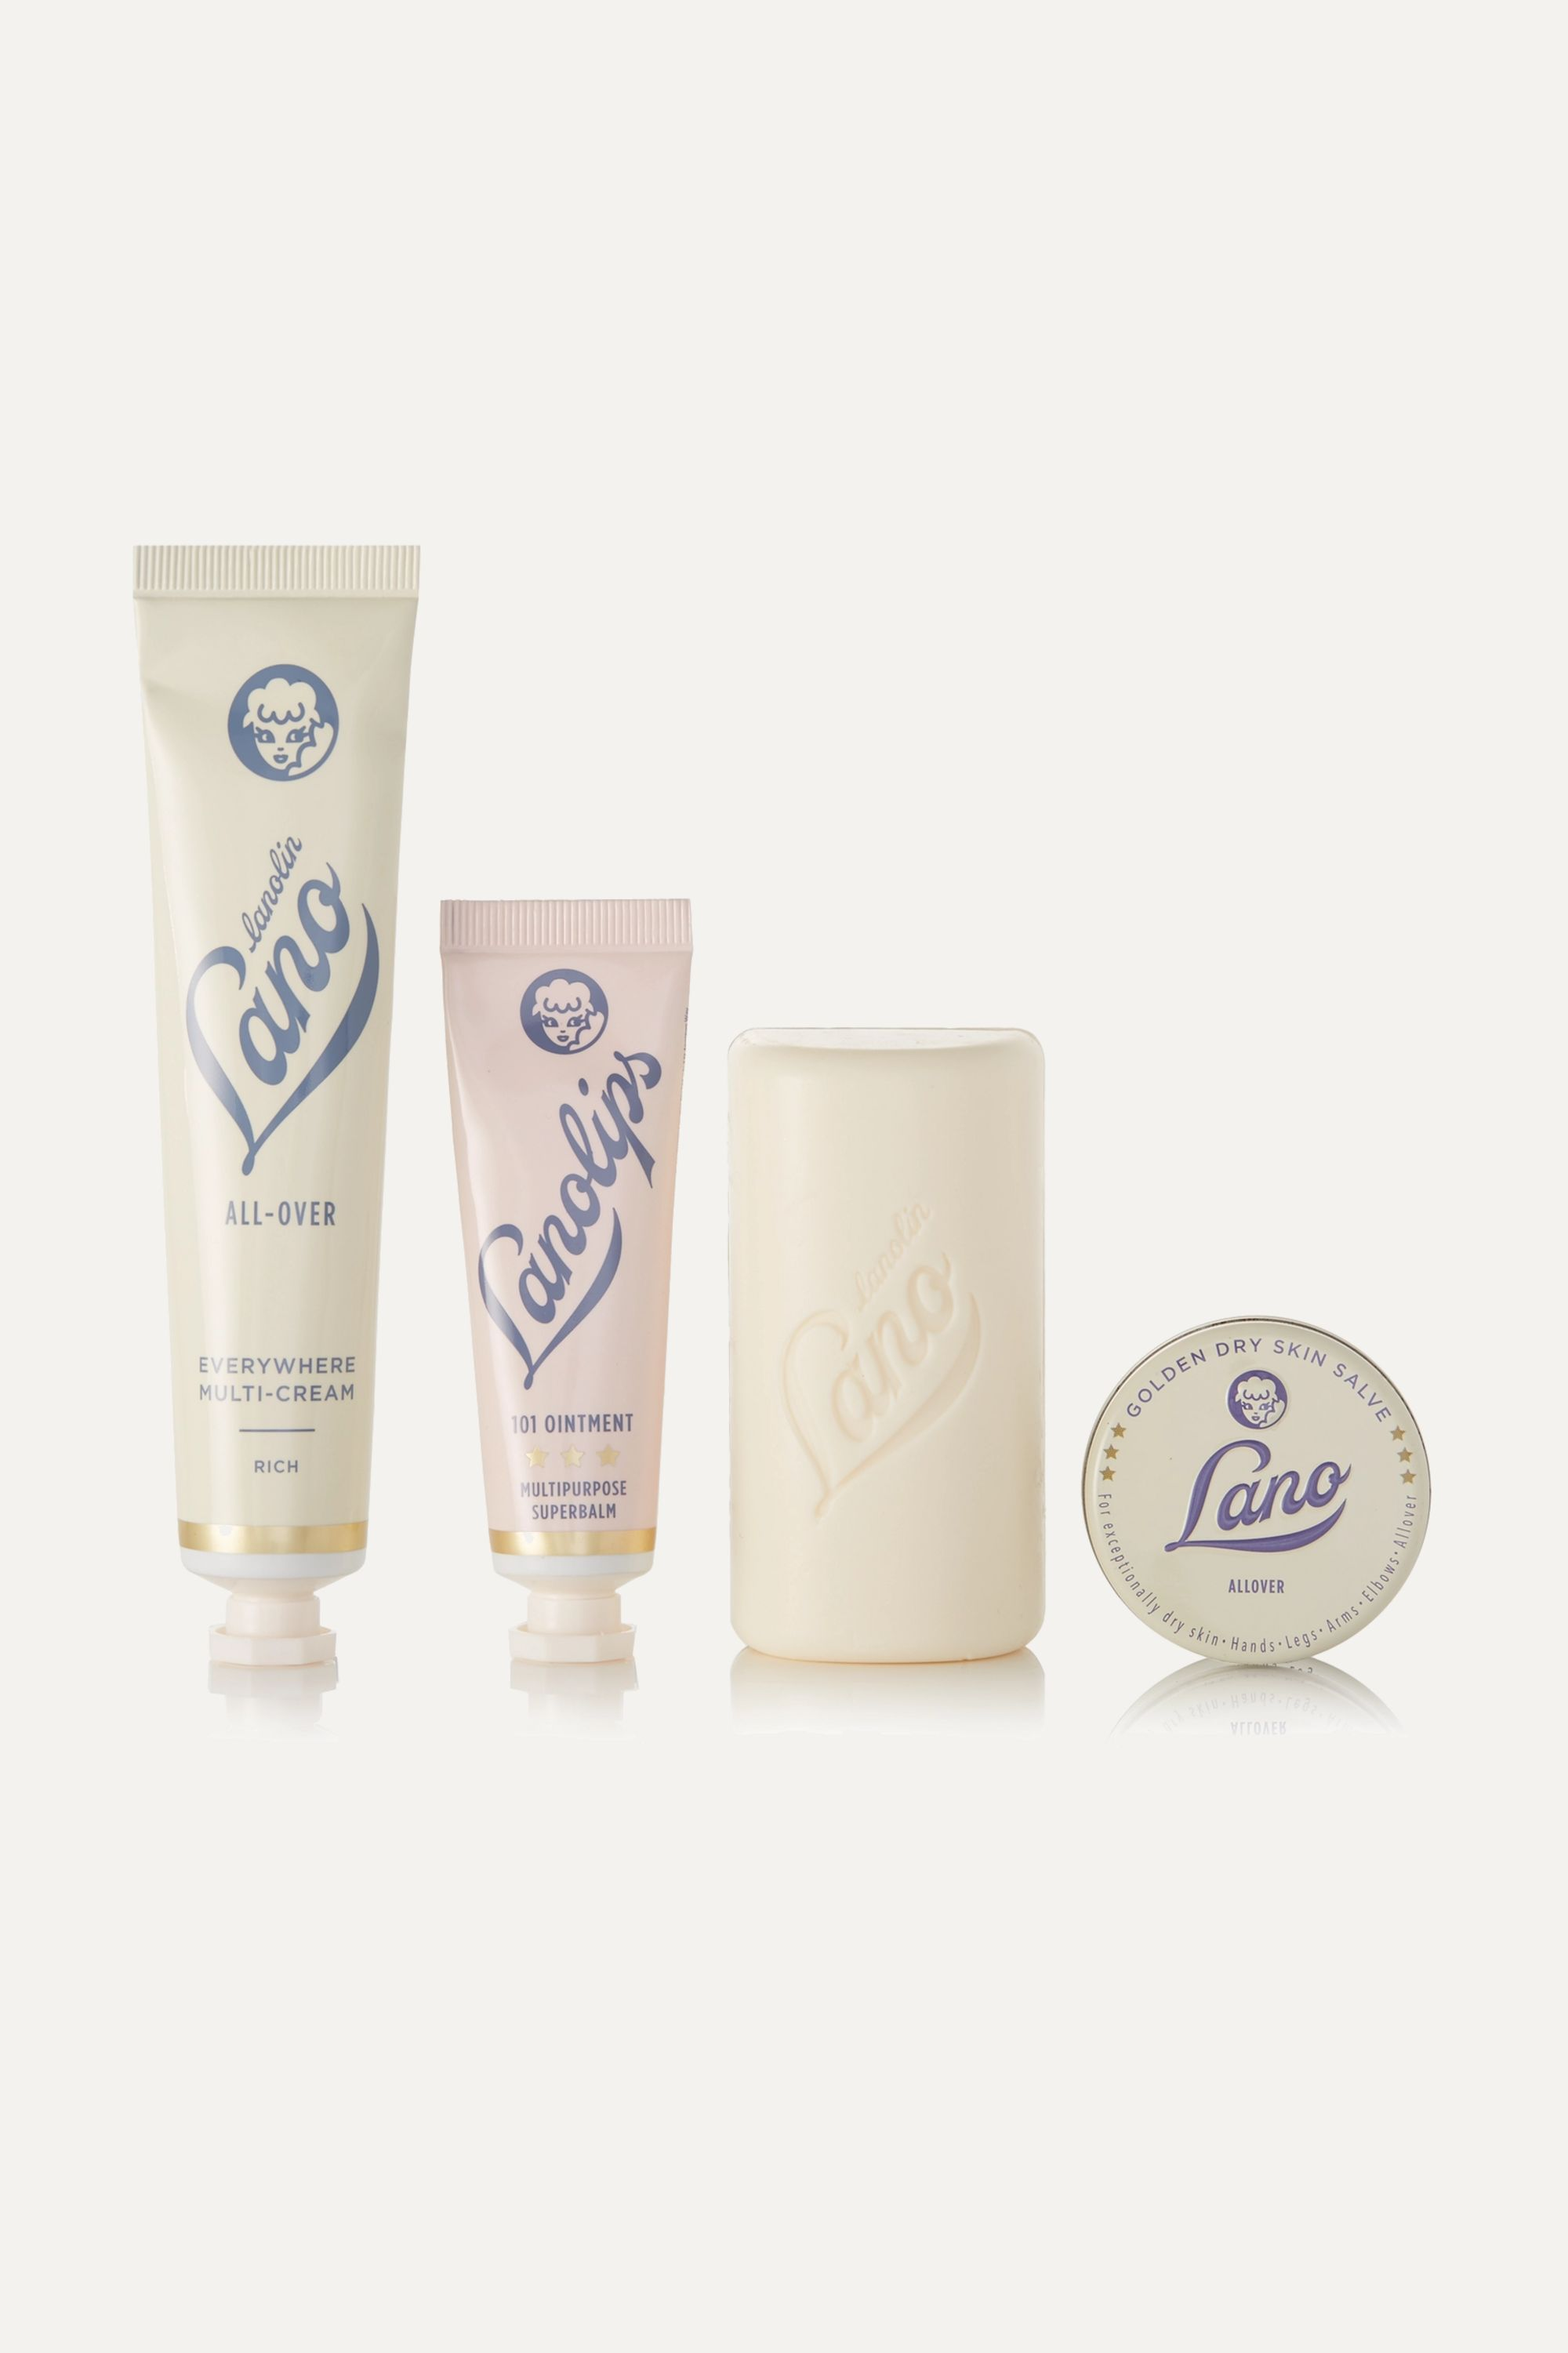 Lano - lips hands all over The Originals Travel-Sized Essentials Kit